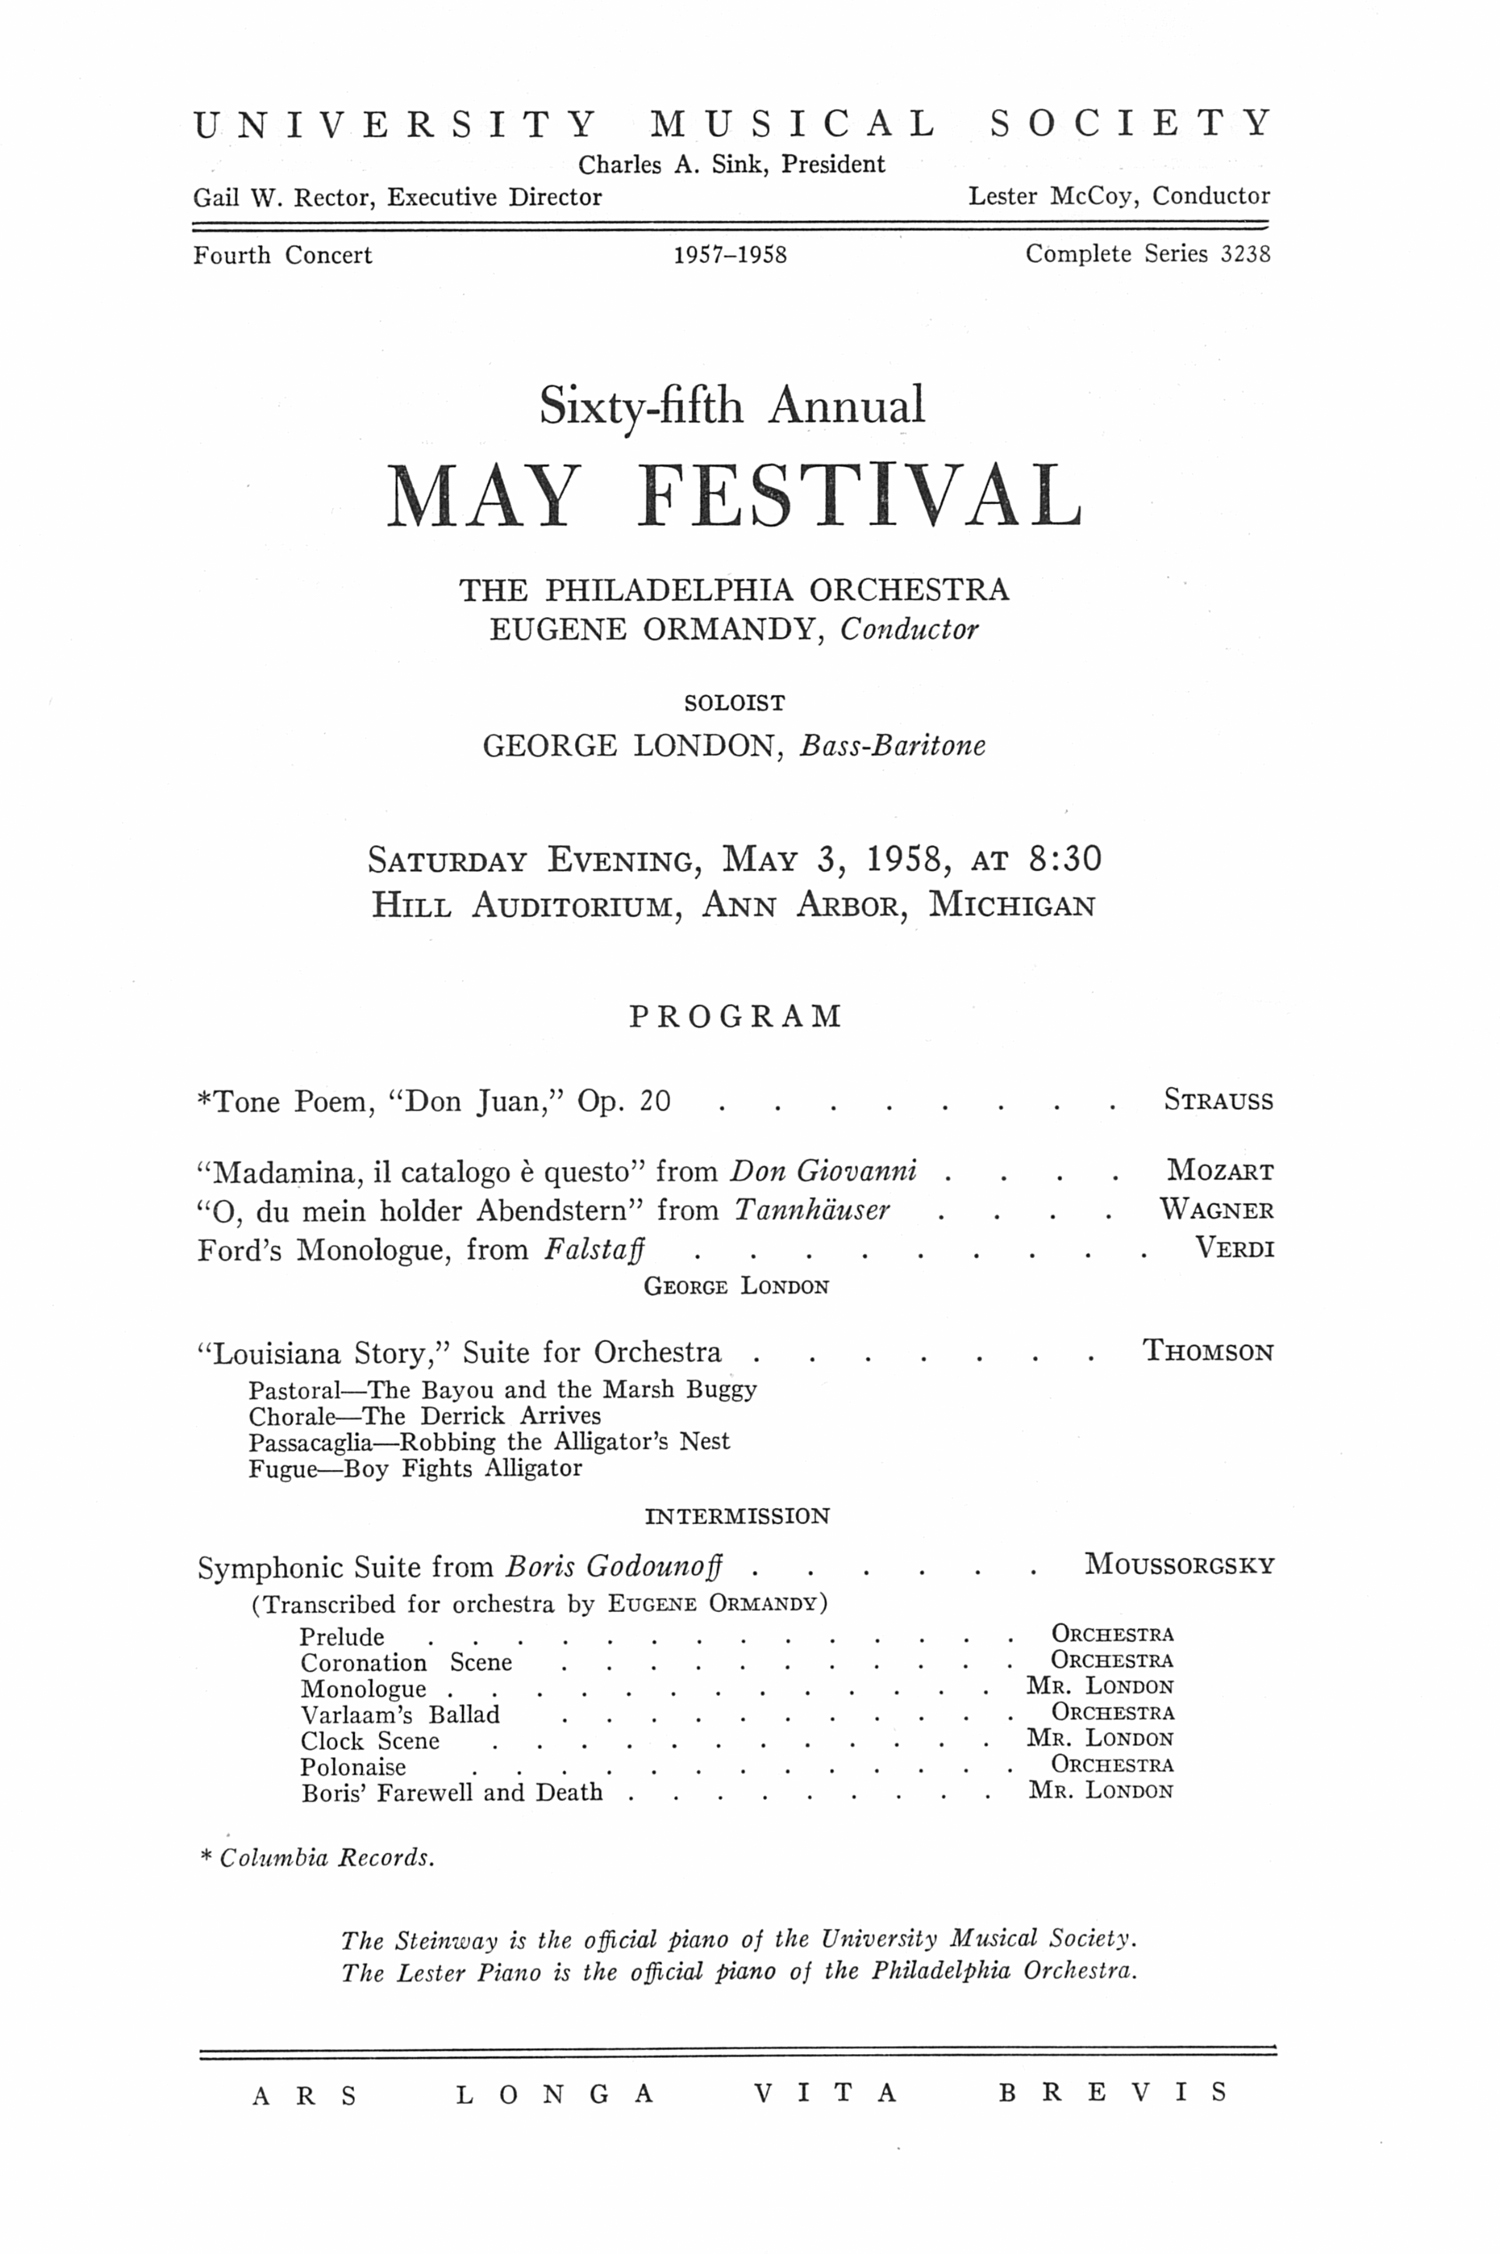 UMS Concert Program, May 3, 1958: Sixty-fifth Annual May Festival -- The Philadelphia Orchestra image